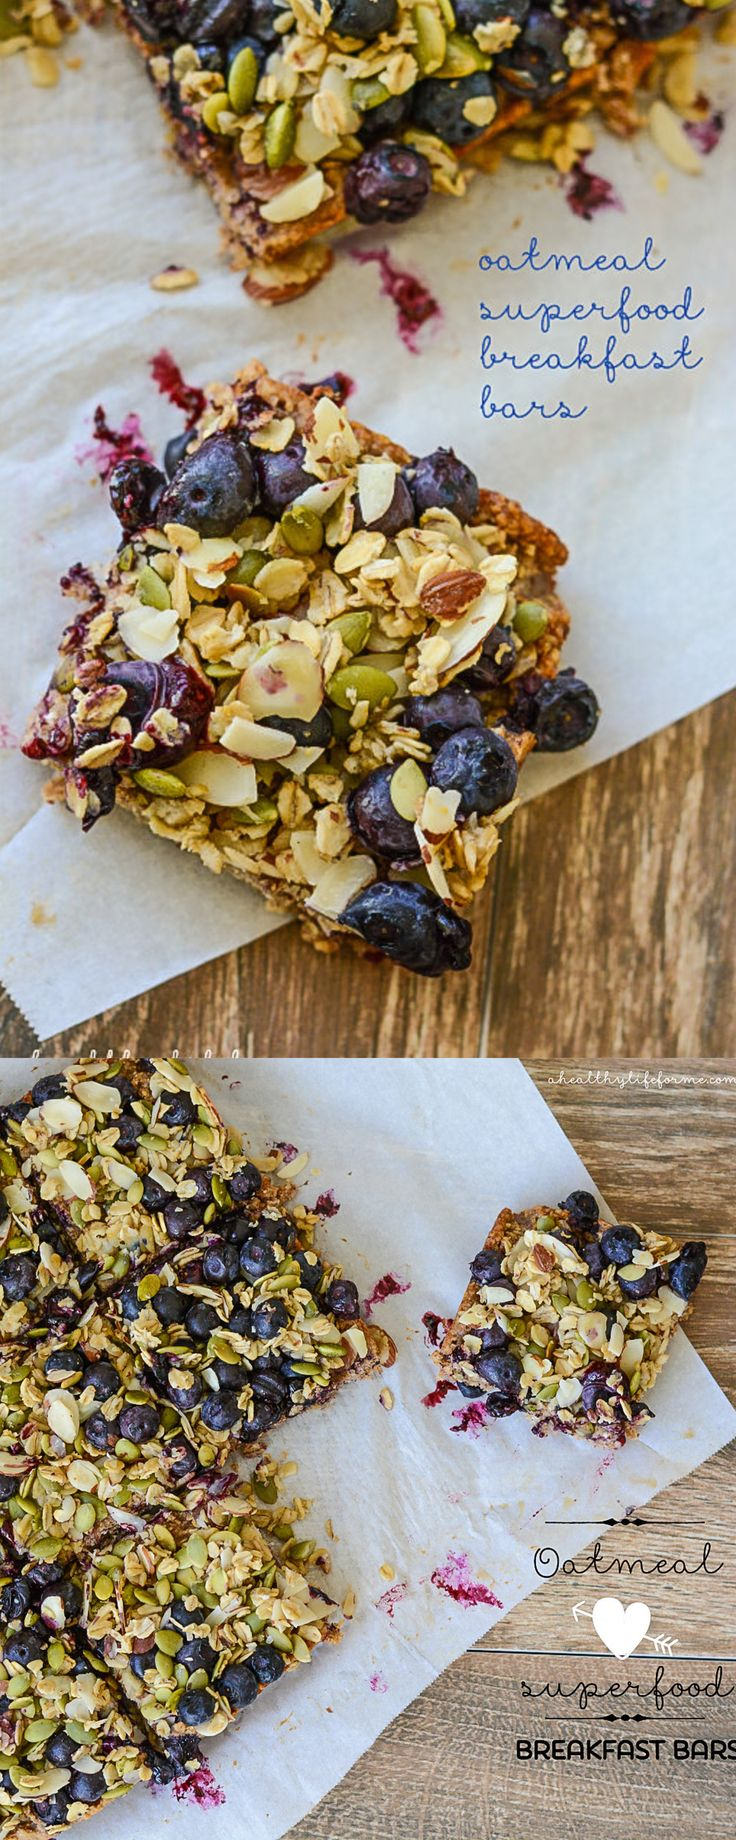 Oatmeal Blueberry Superfood Breakfast Bars by ahealthylifeforme: Loaded with healthy ingredients for a great morning pick me up.